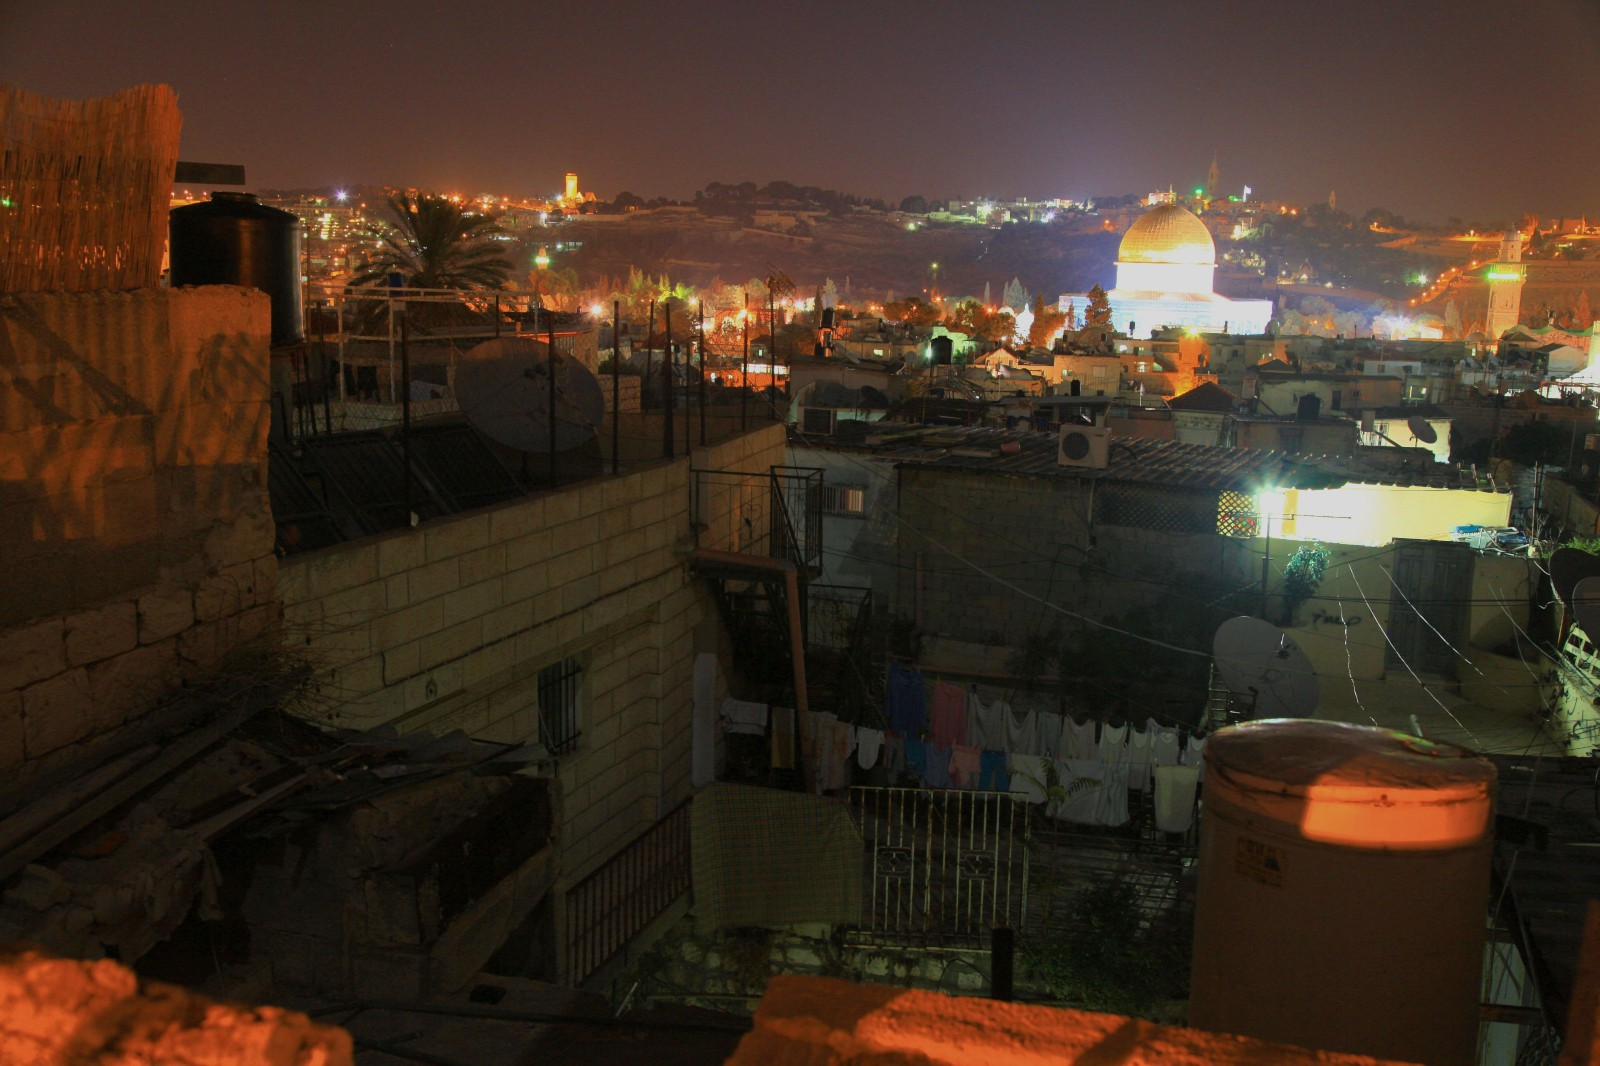 The Dome of The Rock from the roofs of Jerusalem